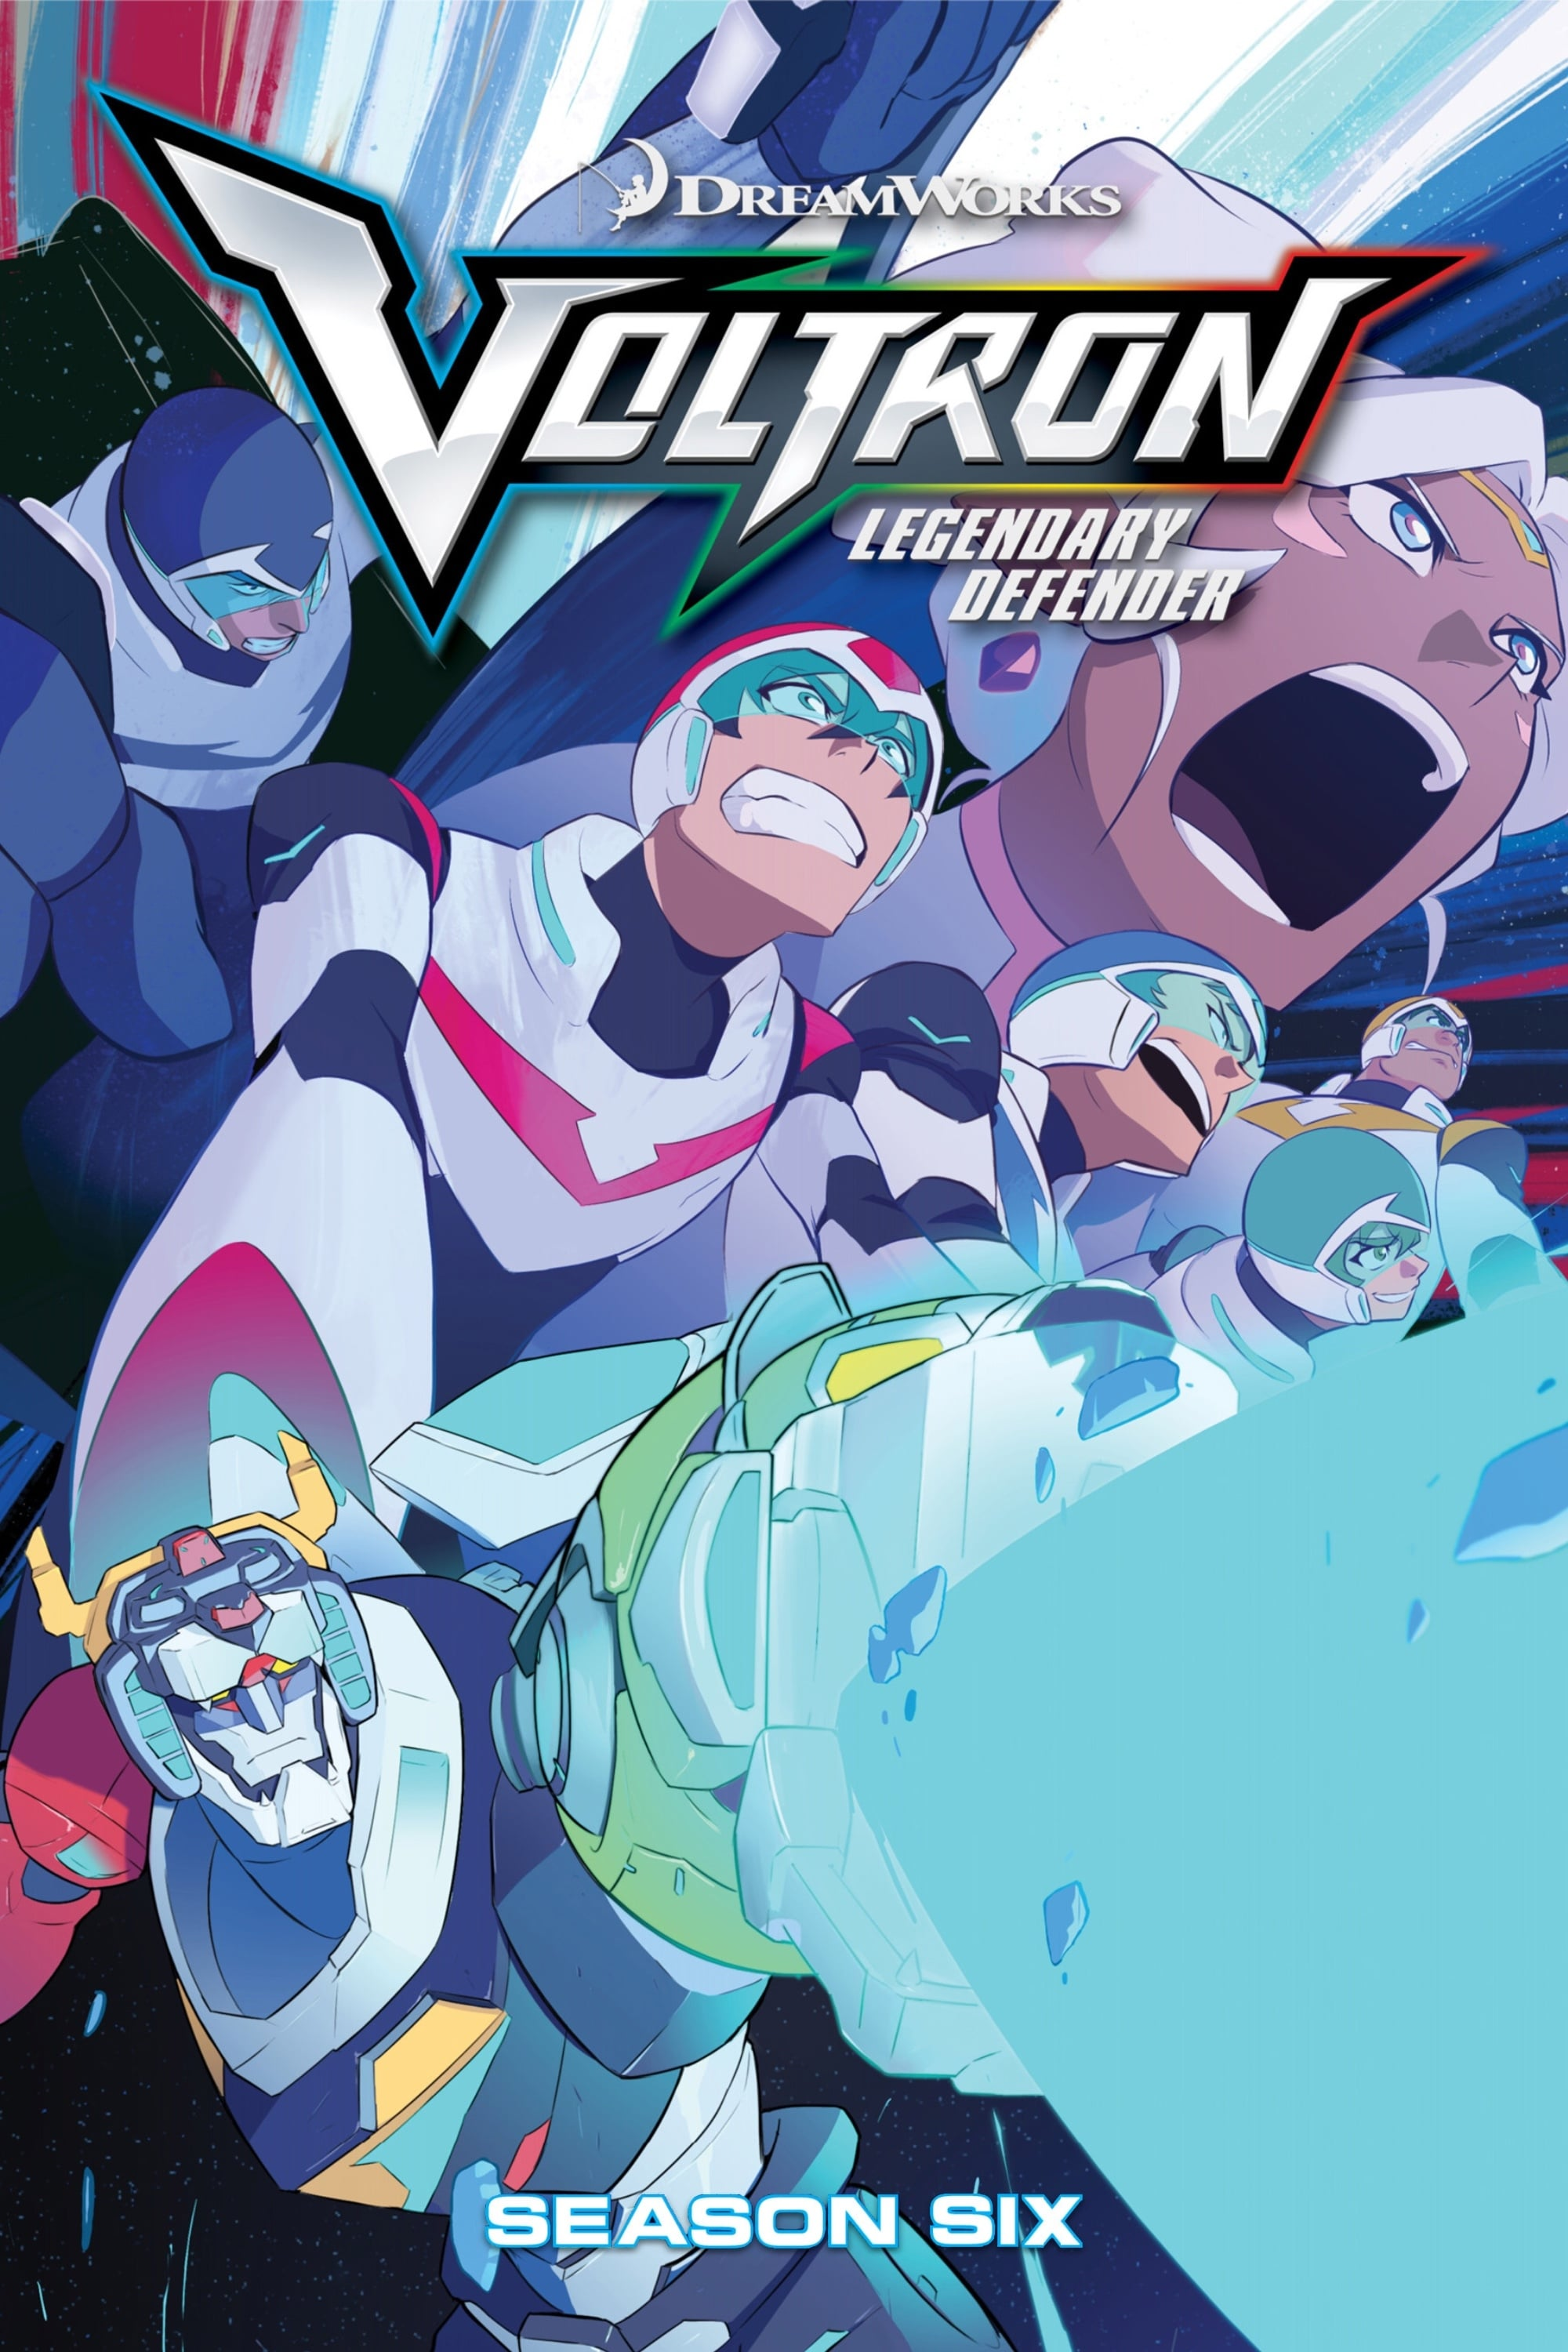 Voltron: Legendary Defender Season 6